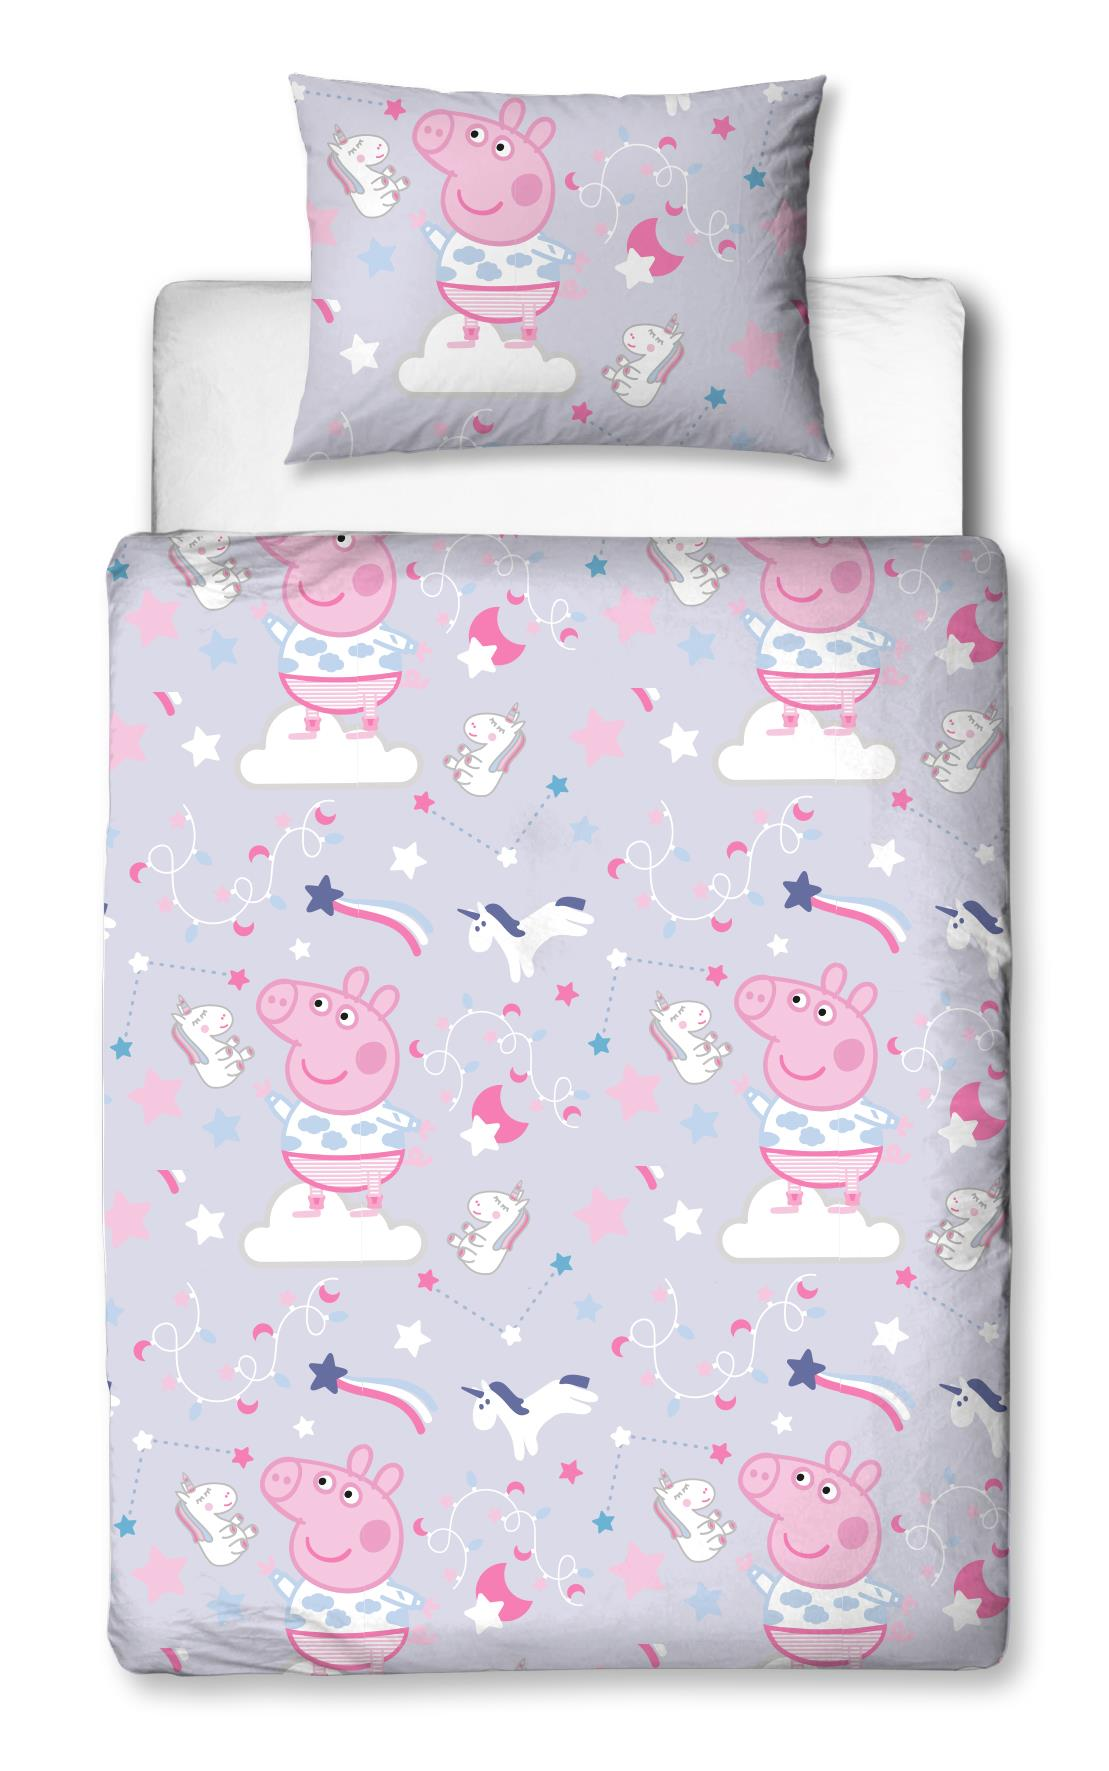 Official-Peppa-Pig-George-Duvet-Covers-Single-Double-Reversible-Bedding thumbnail 37